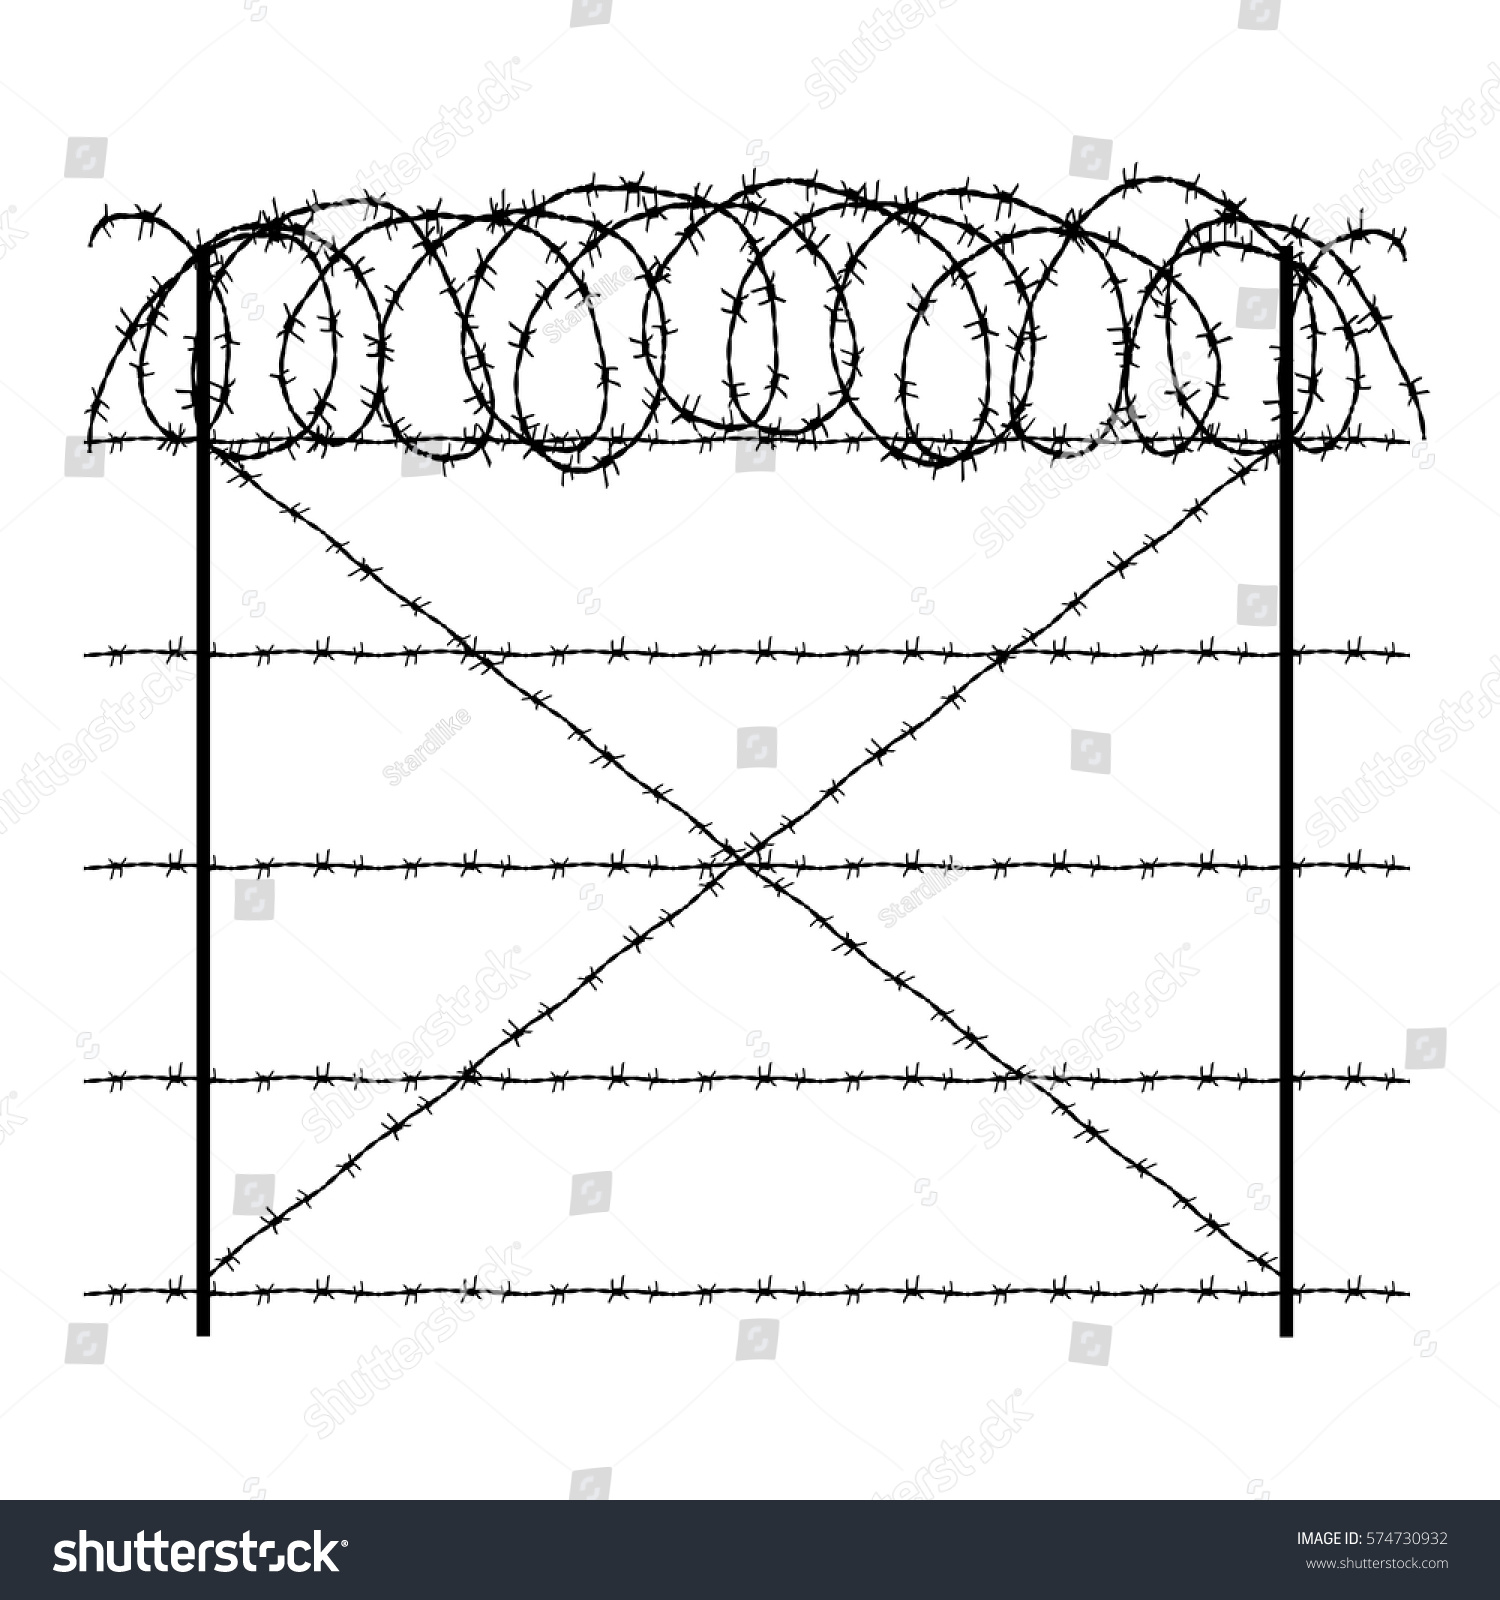 Barbed wire diagram